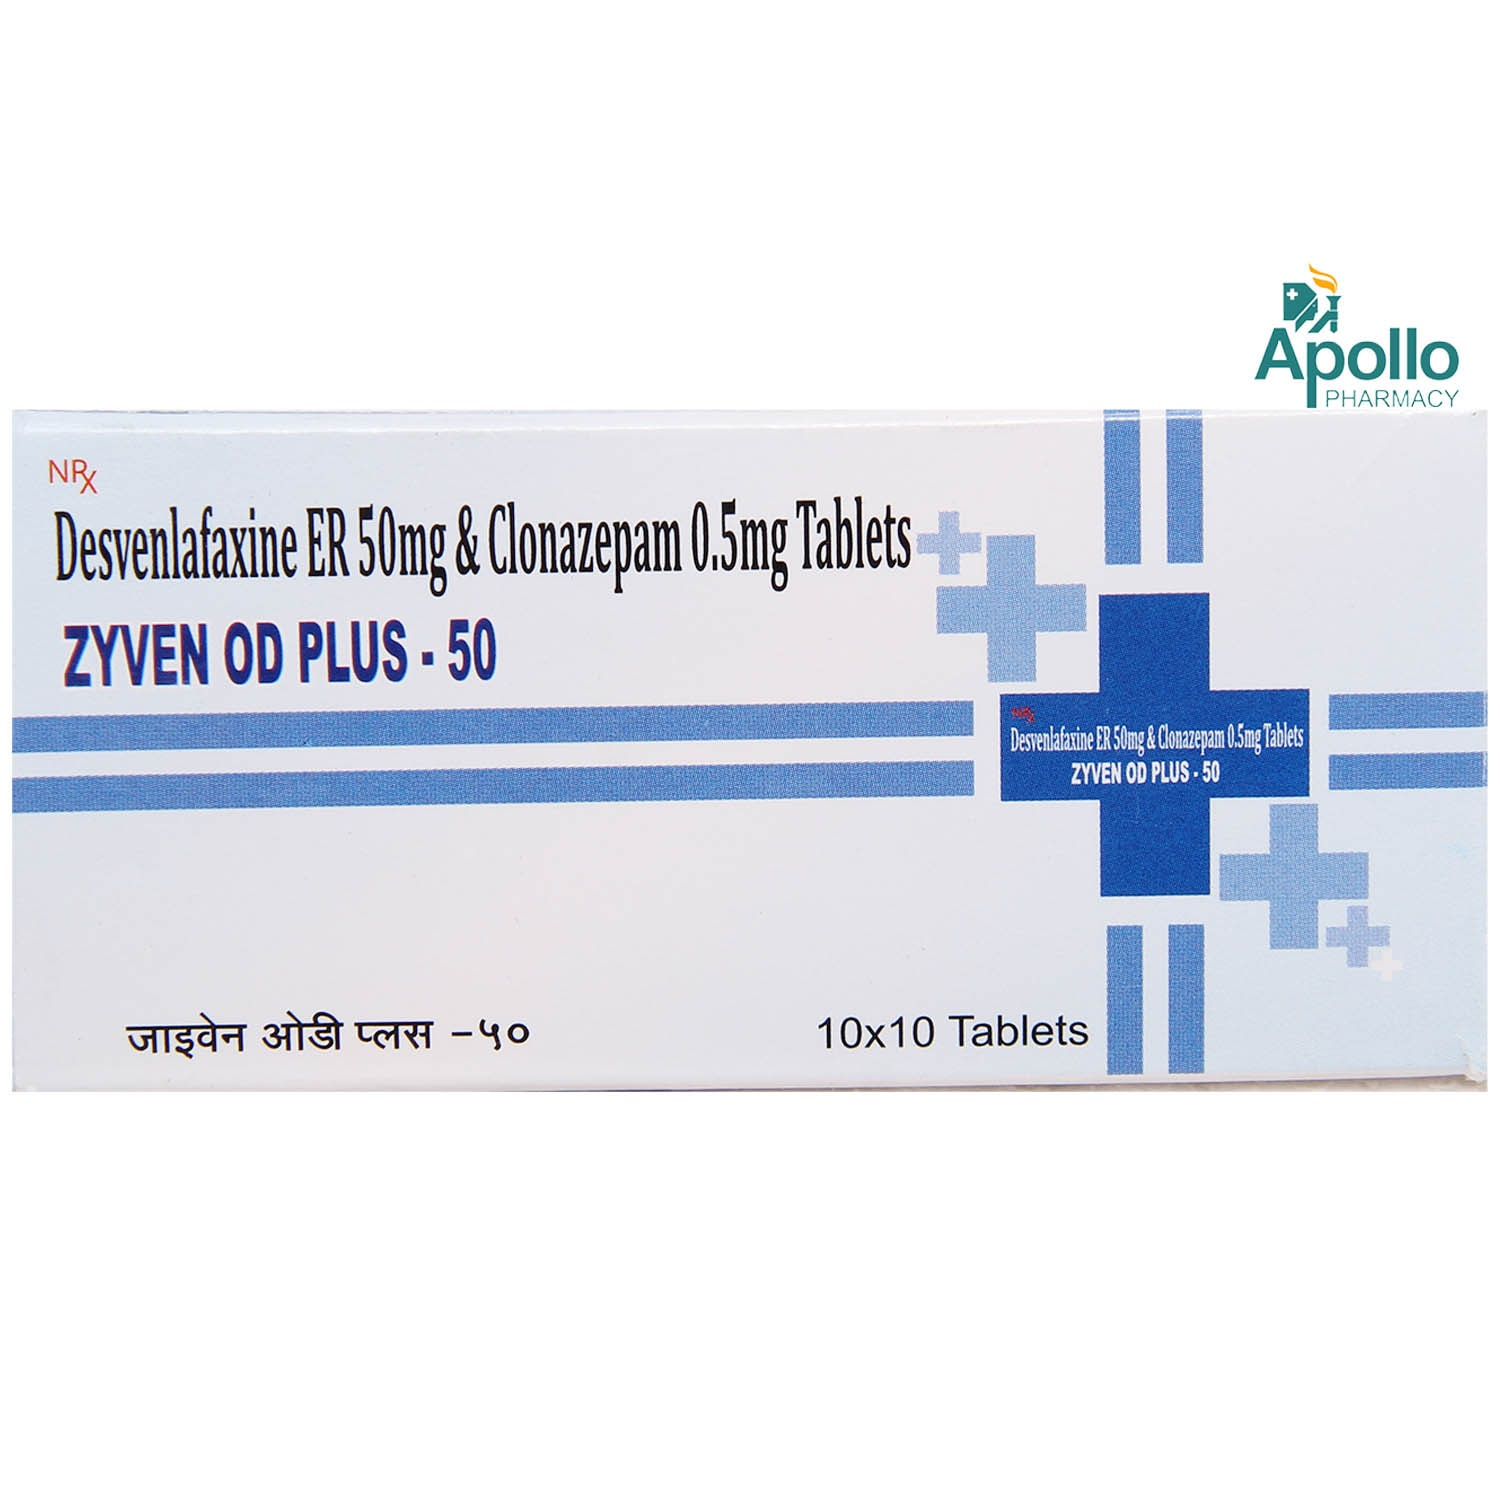 ZYVEN OD PLUS 50MG TABLET